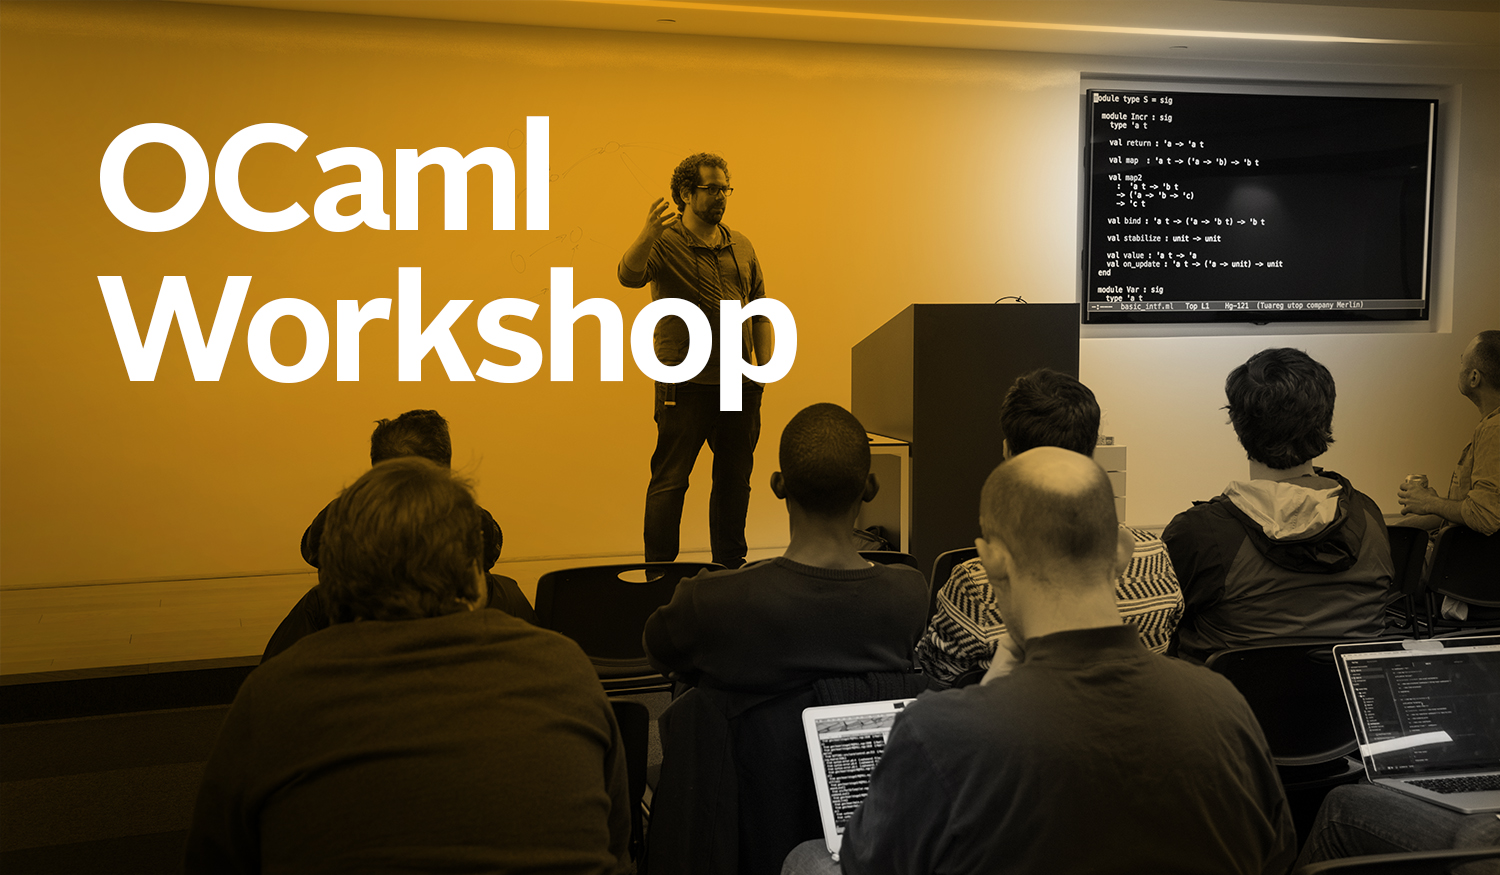 ocaml_workshop.jpg